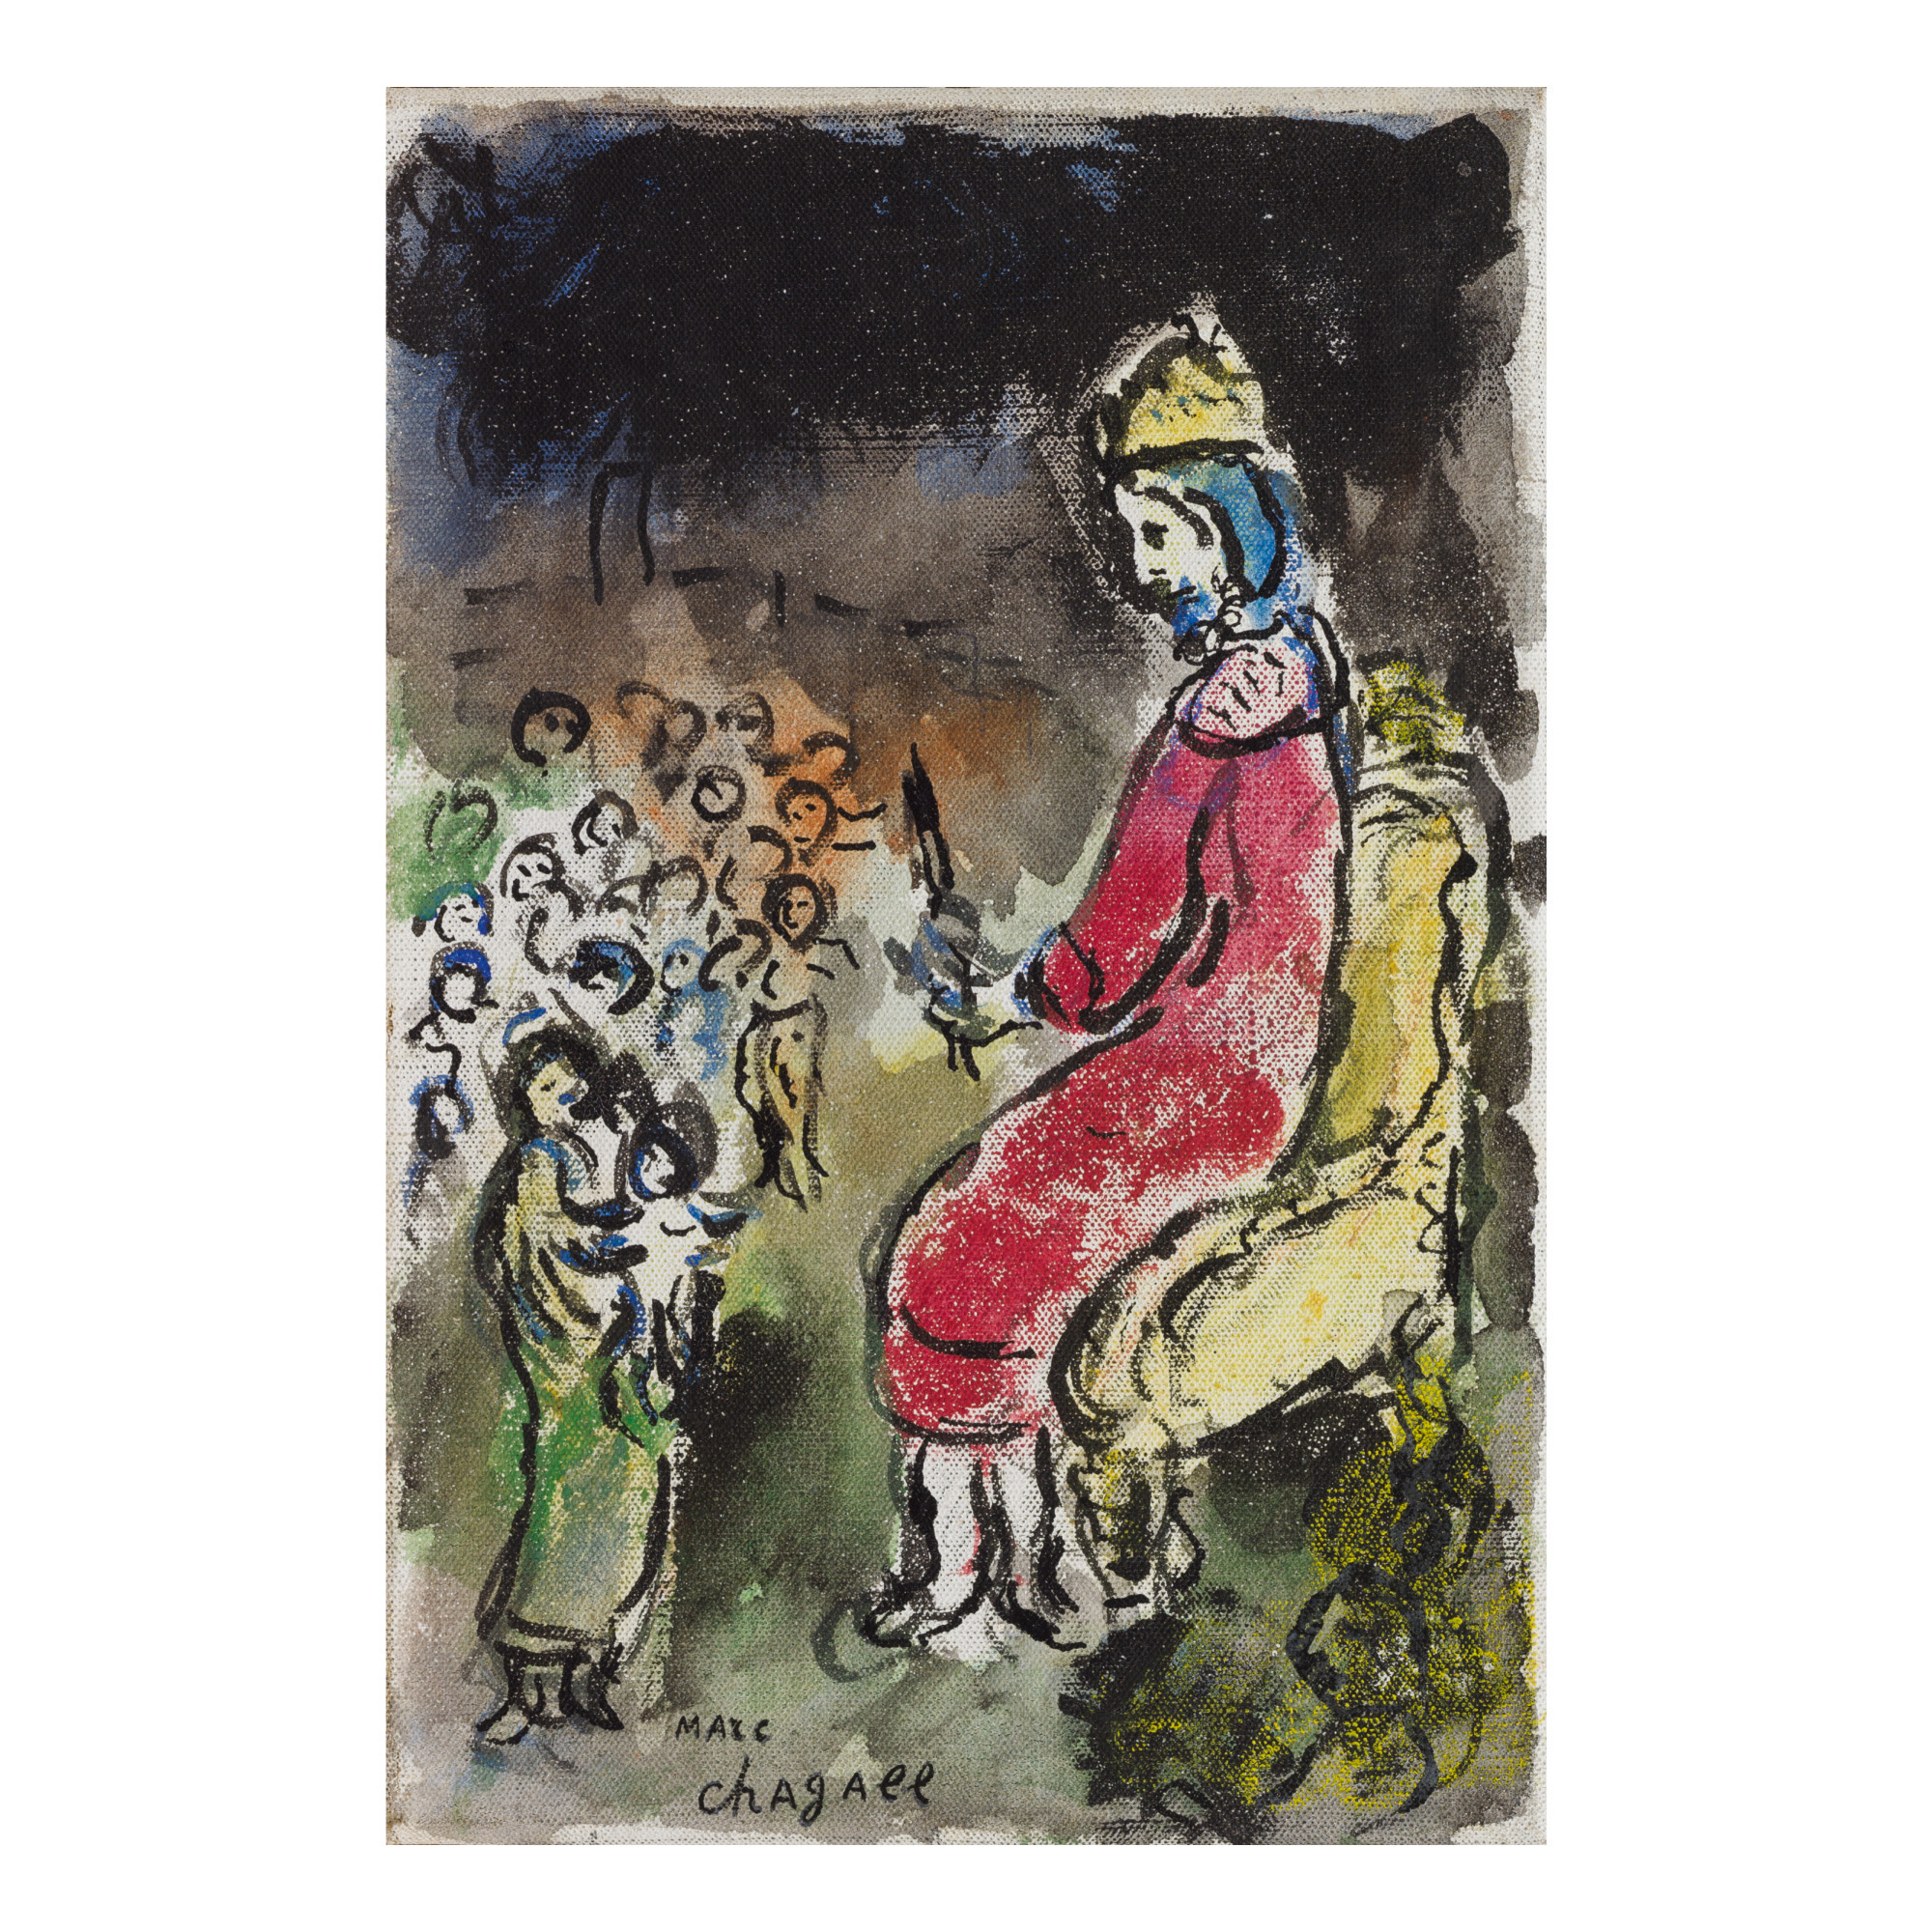 MARC CHAGALL | LE ROI DAVID